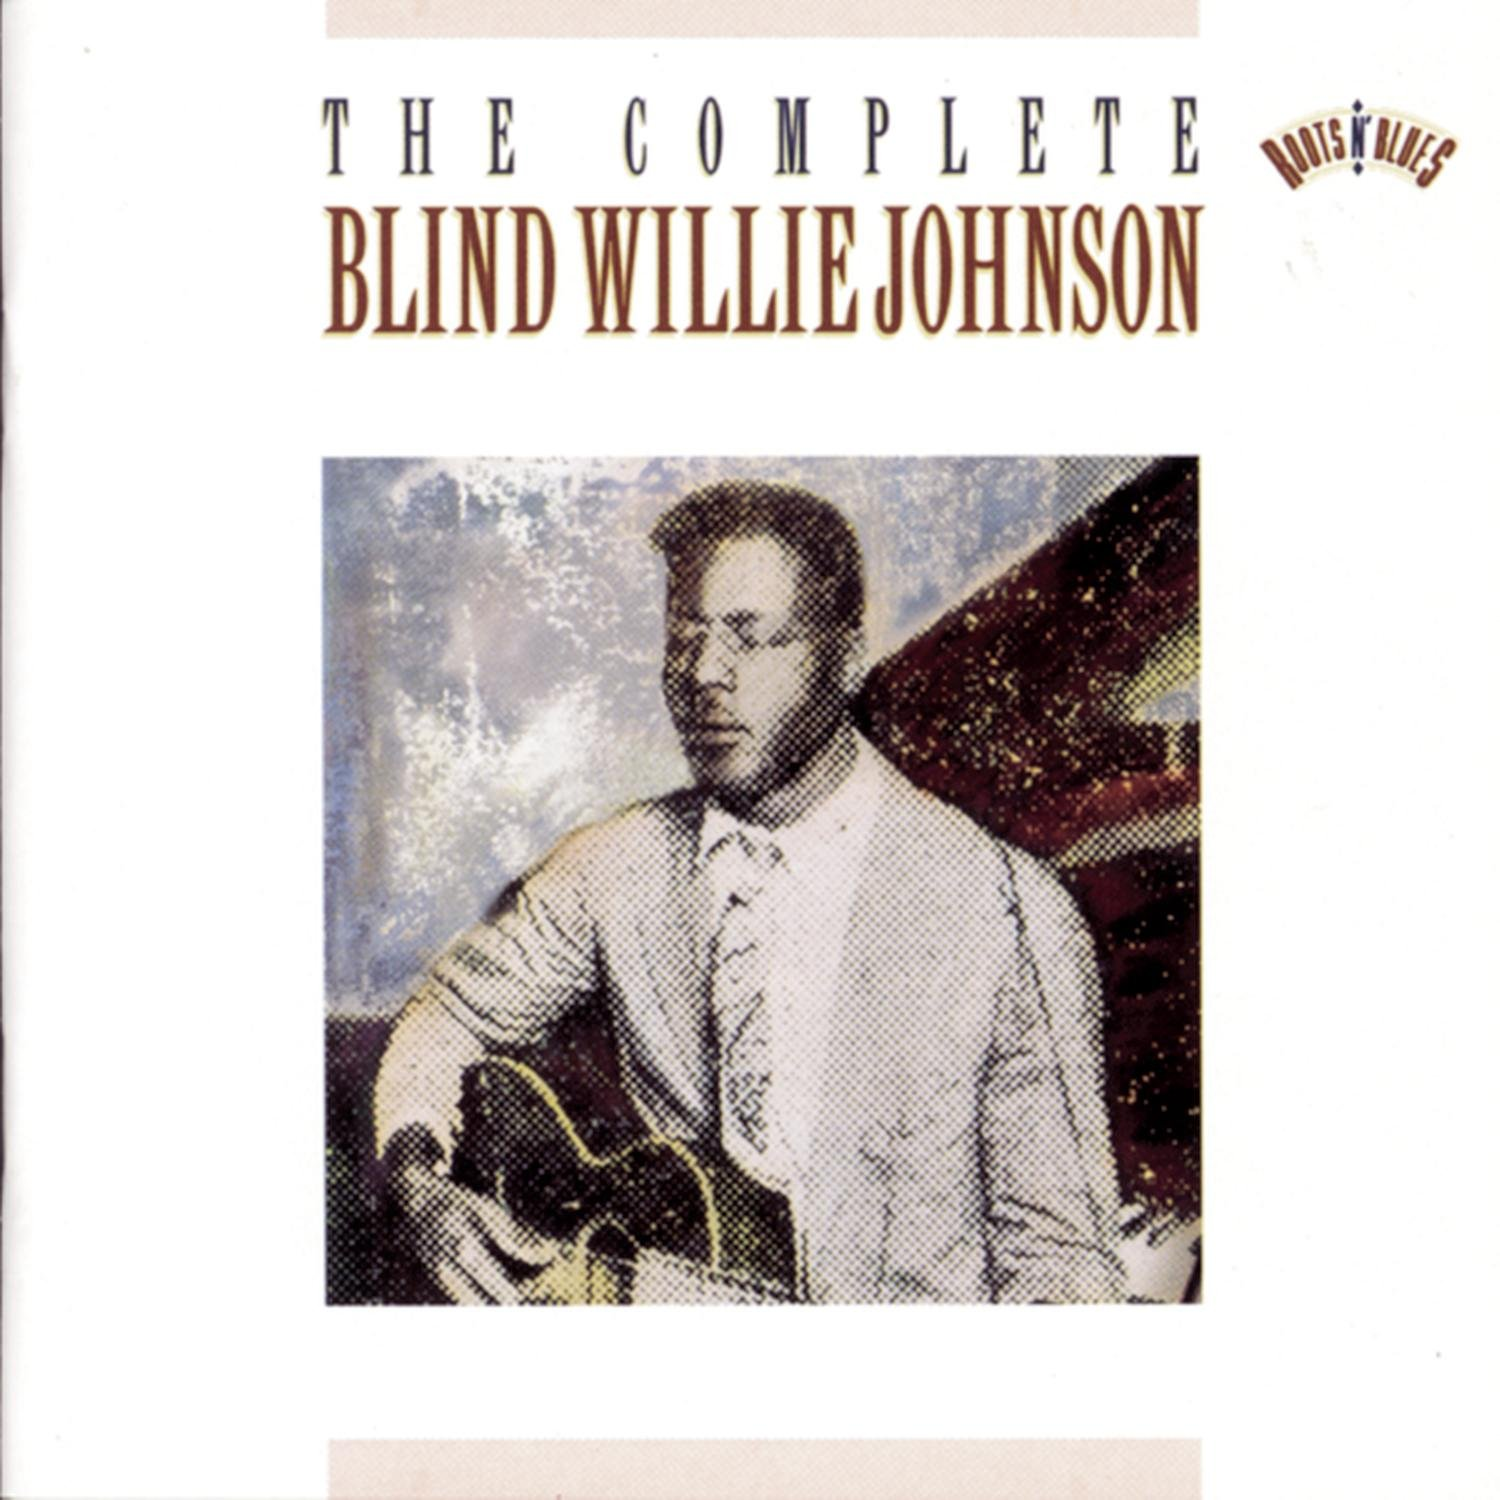 The Complete Blind Willie Johnson by JOHNSON,BLIND WILLIE